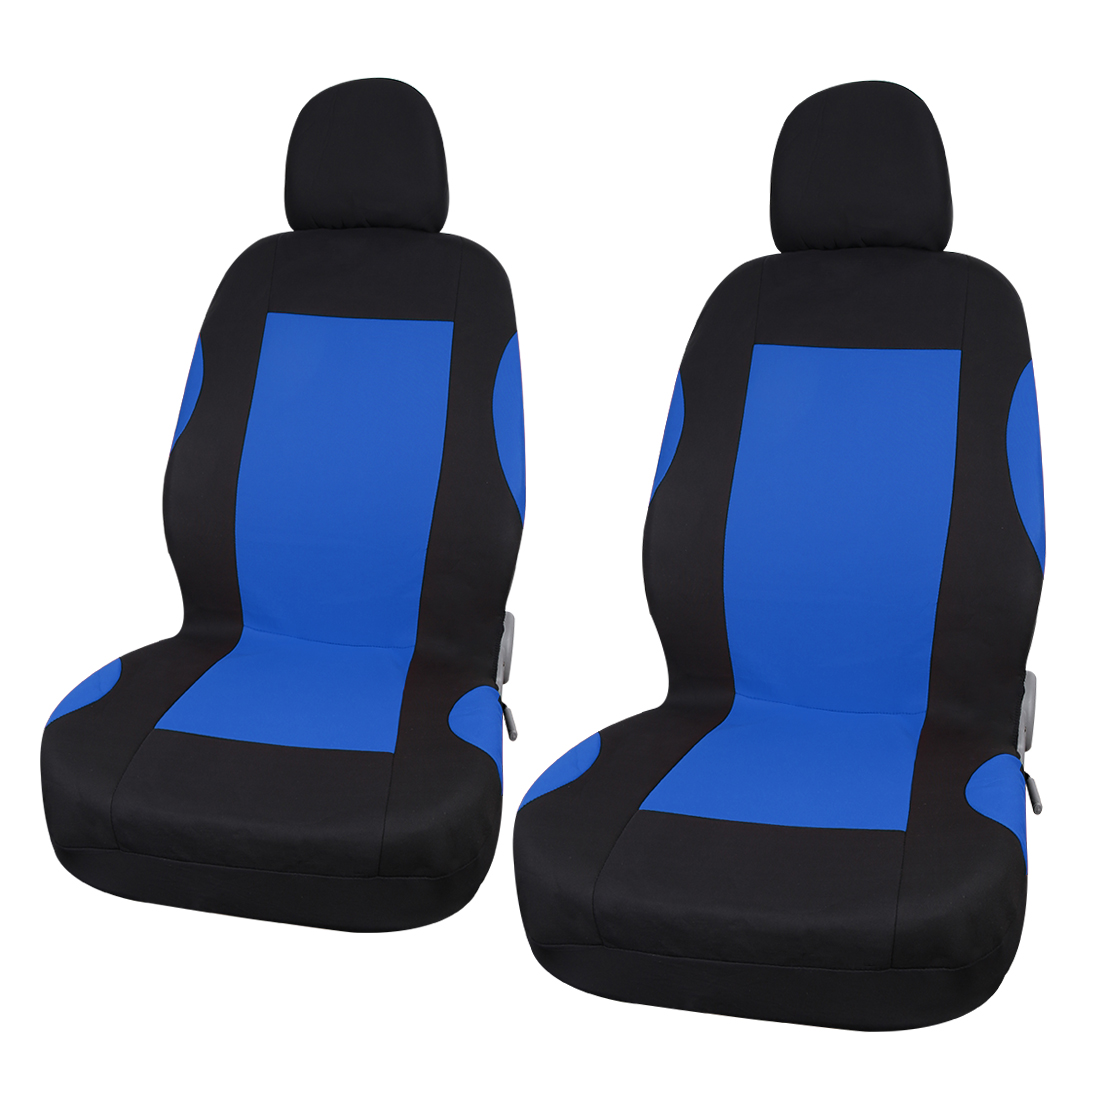 8pcs Styling Auto Interior Accessories Car Seat Cover full set Blue